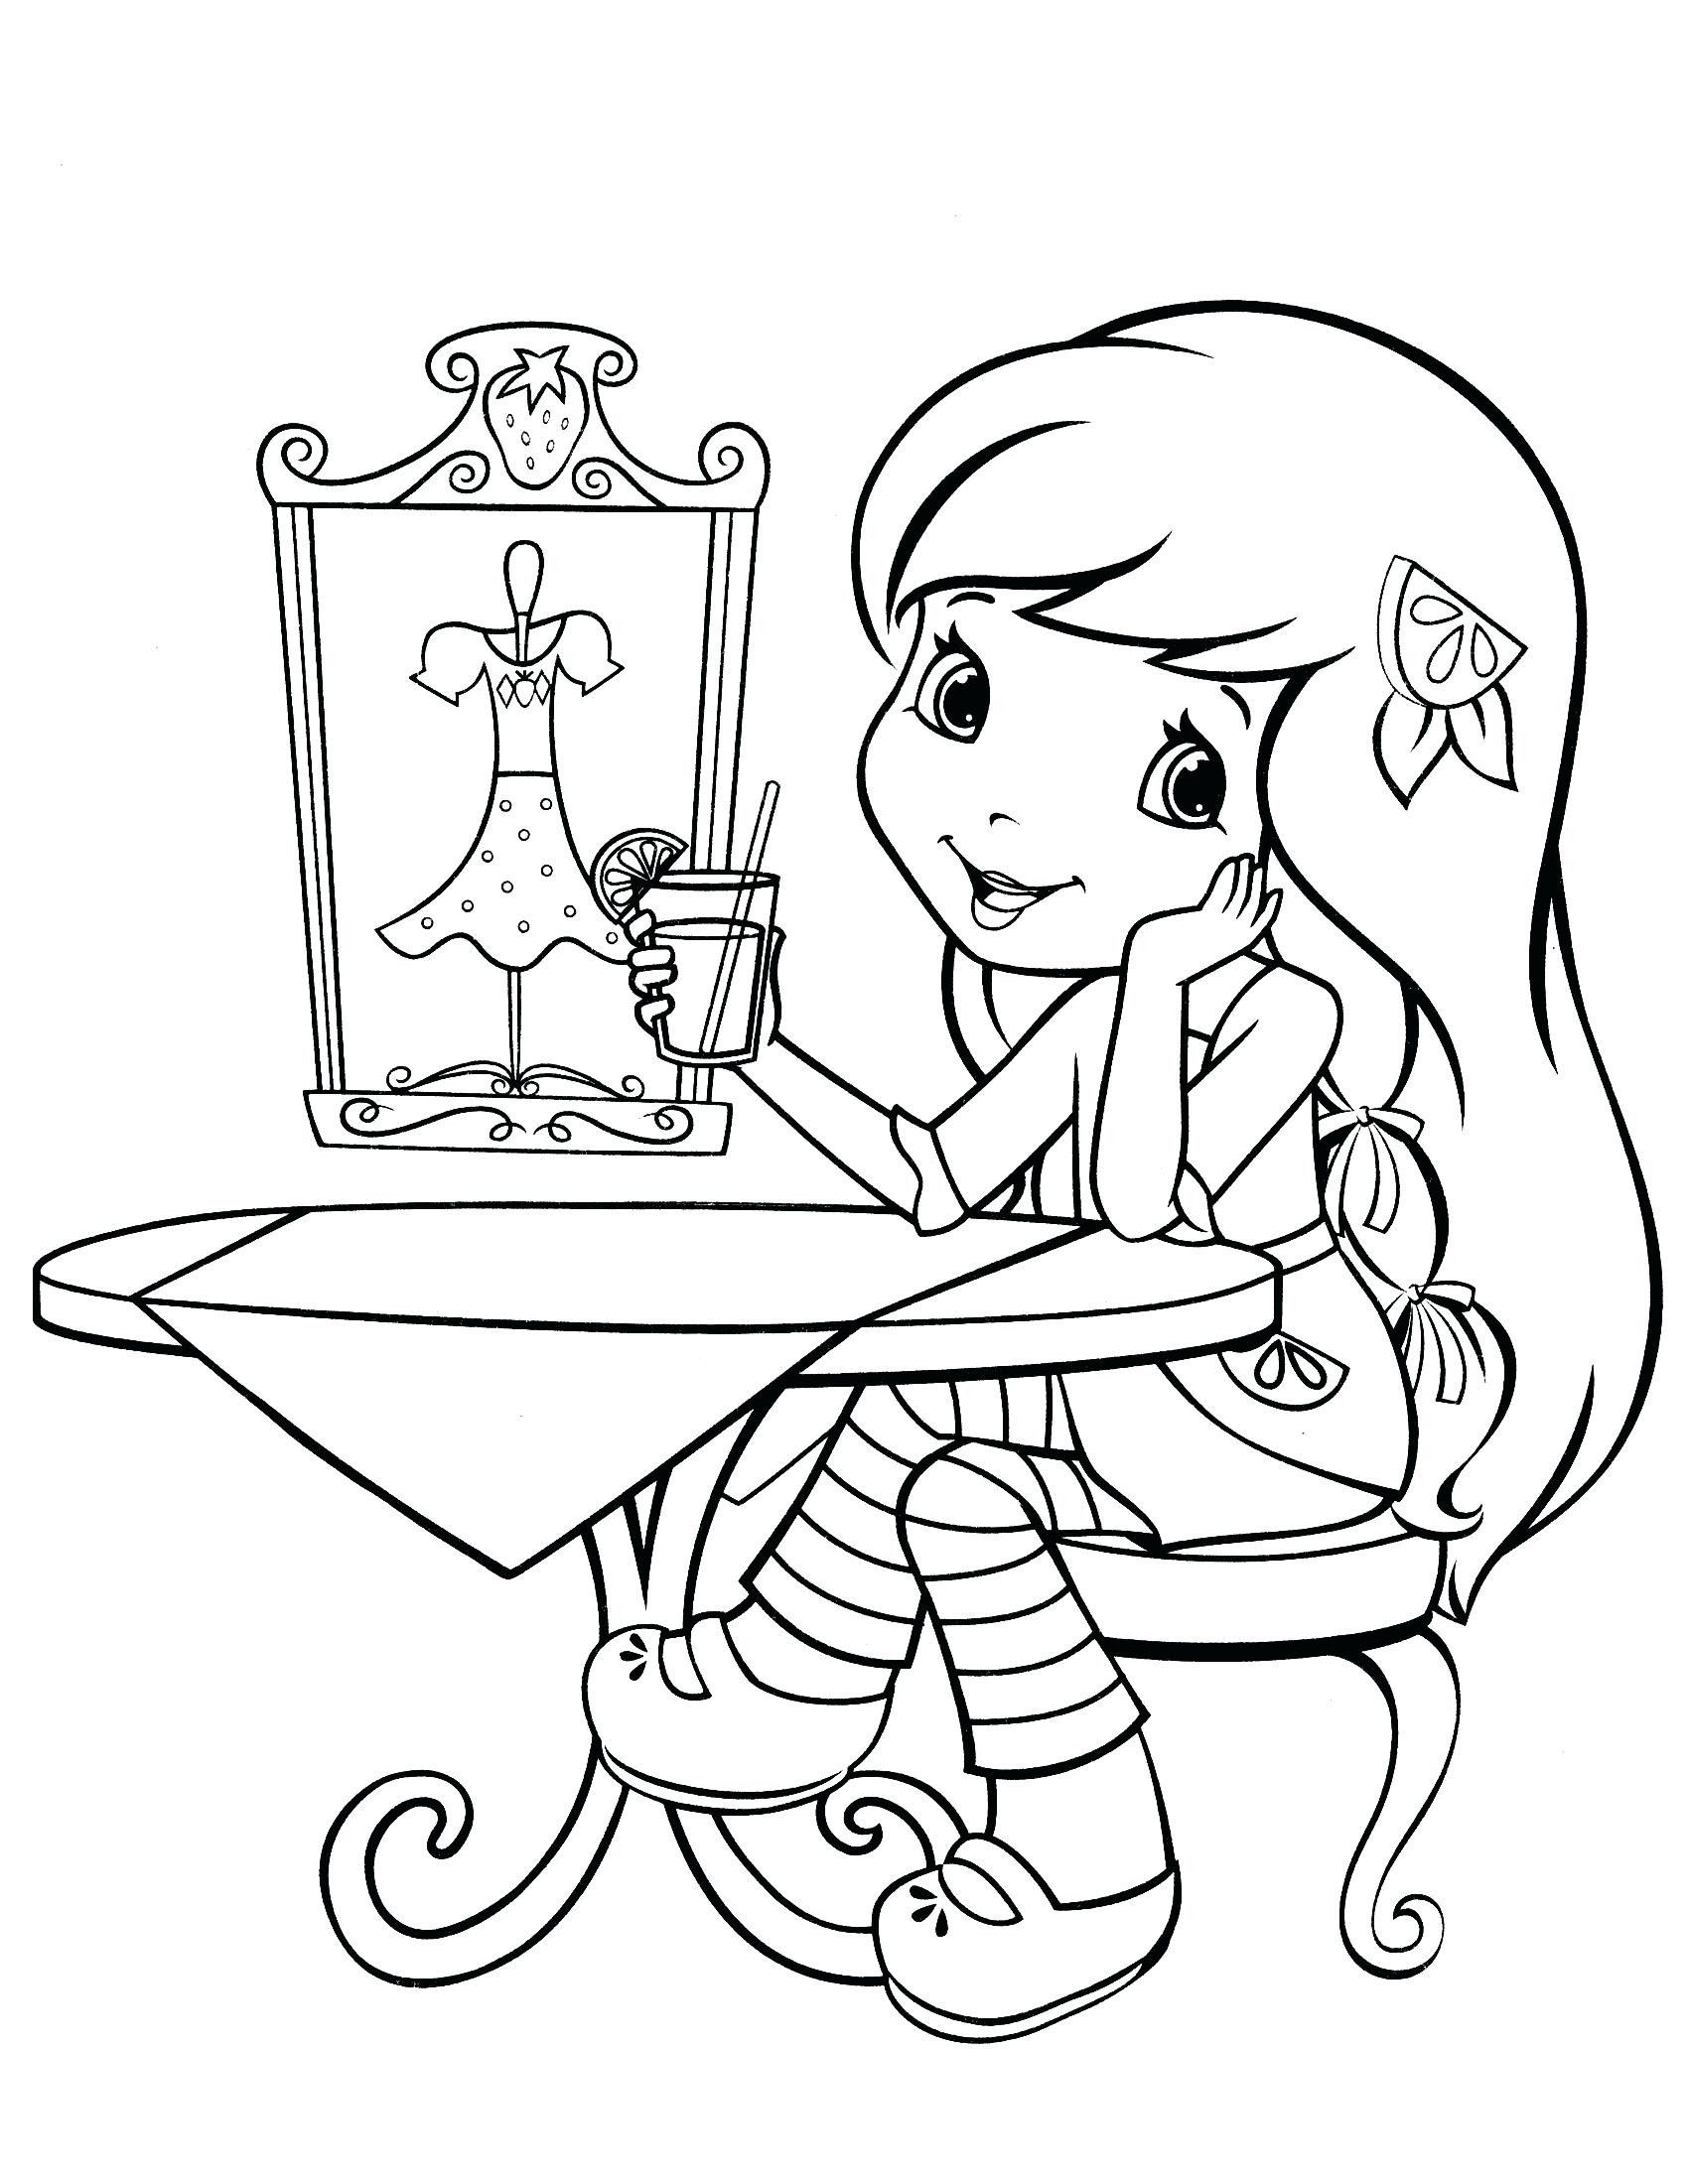 4 Worksheet Strawberry Shortcake Coloring Pages For Kids